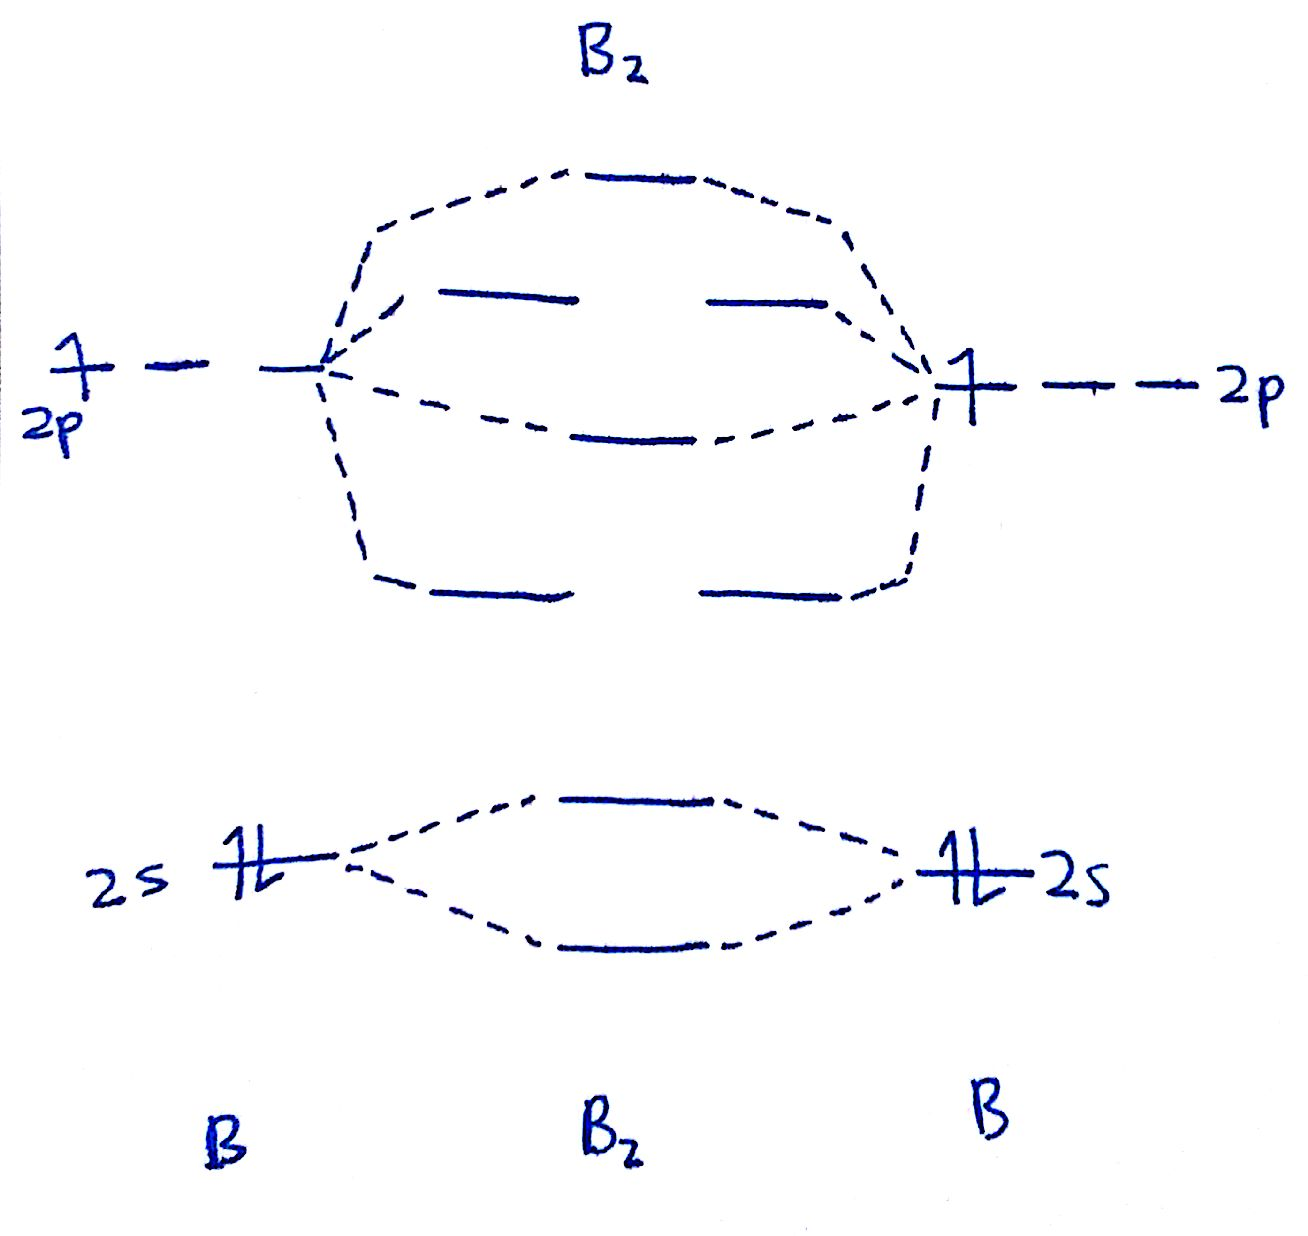 hight resolution of draw out the mo diagram and label in the valence electrons boron has 2 electrons in the 2s 2 s orbitals and 1 electron in the 2p 2 p orbital